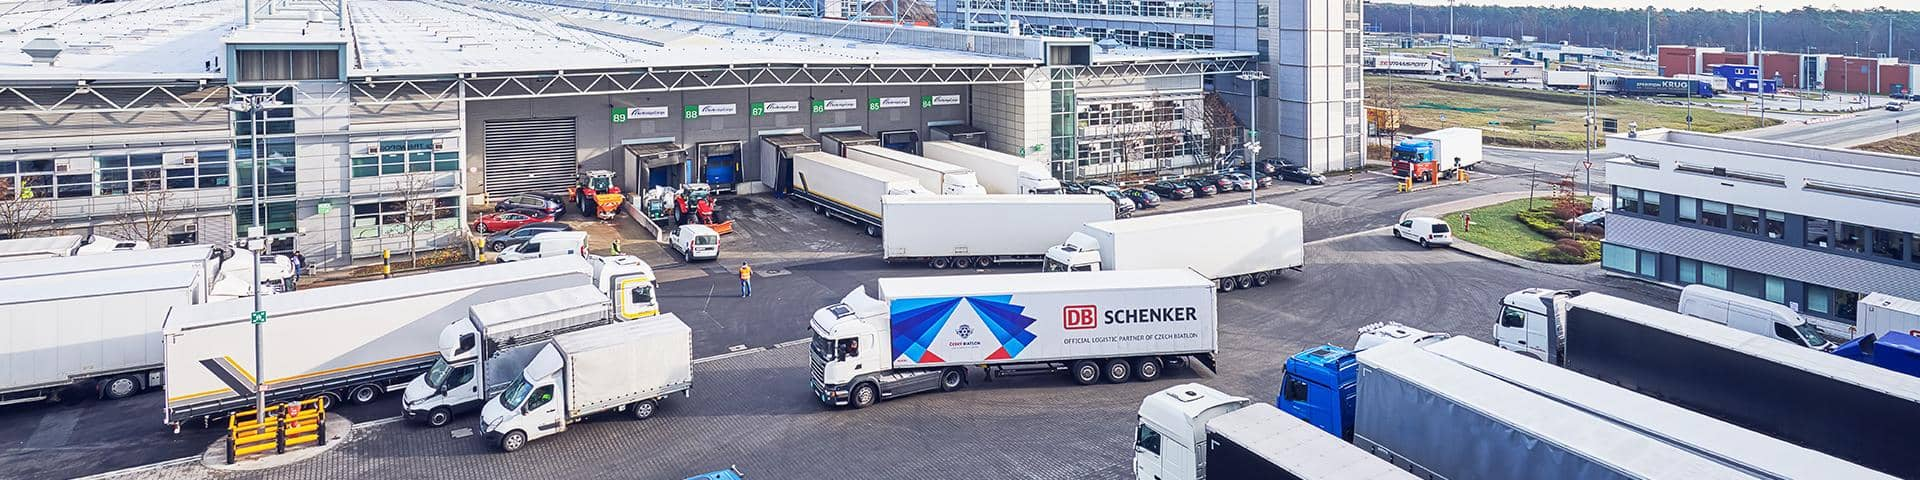 DB Schenker Warehouse Truck parking